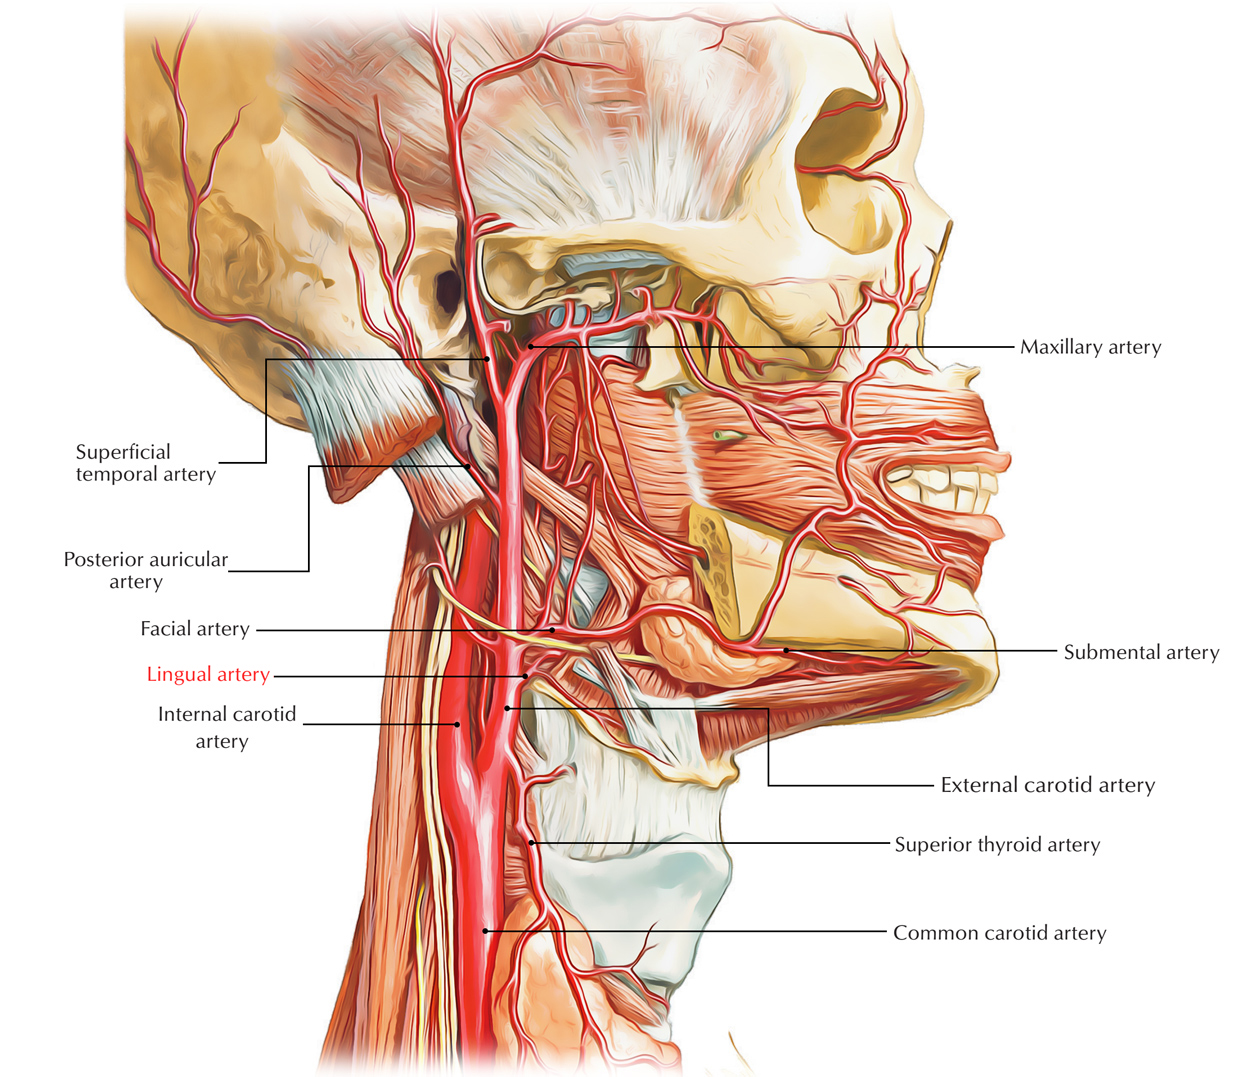 Internal Carotid Artery Anatomy Pictures and Information - oukas.info